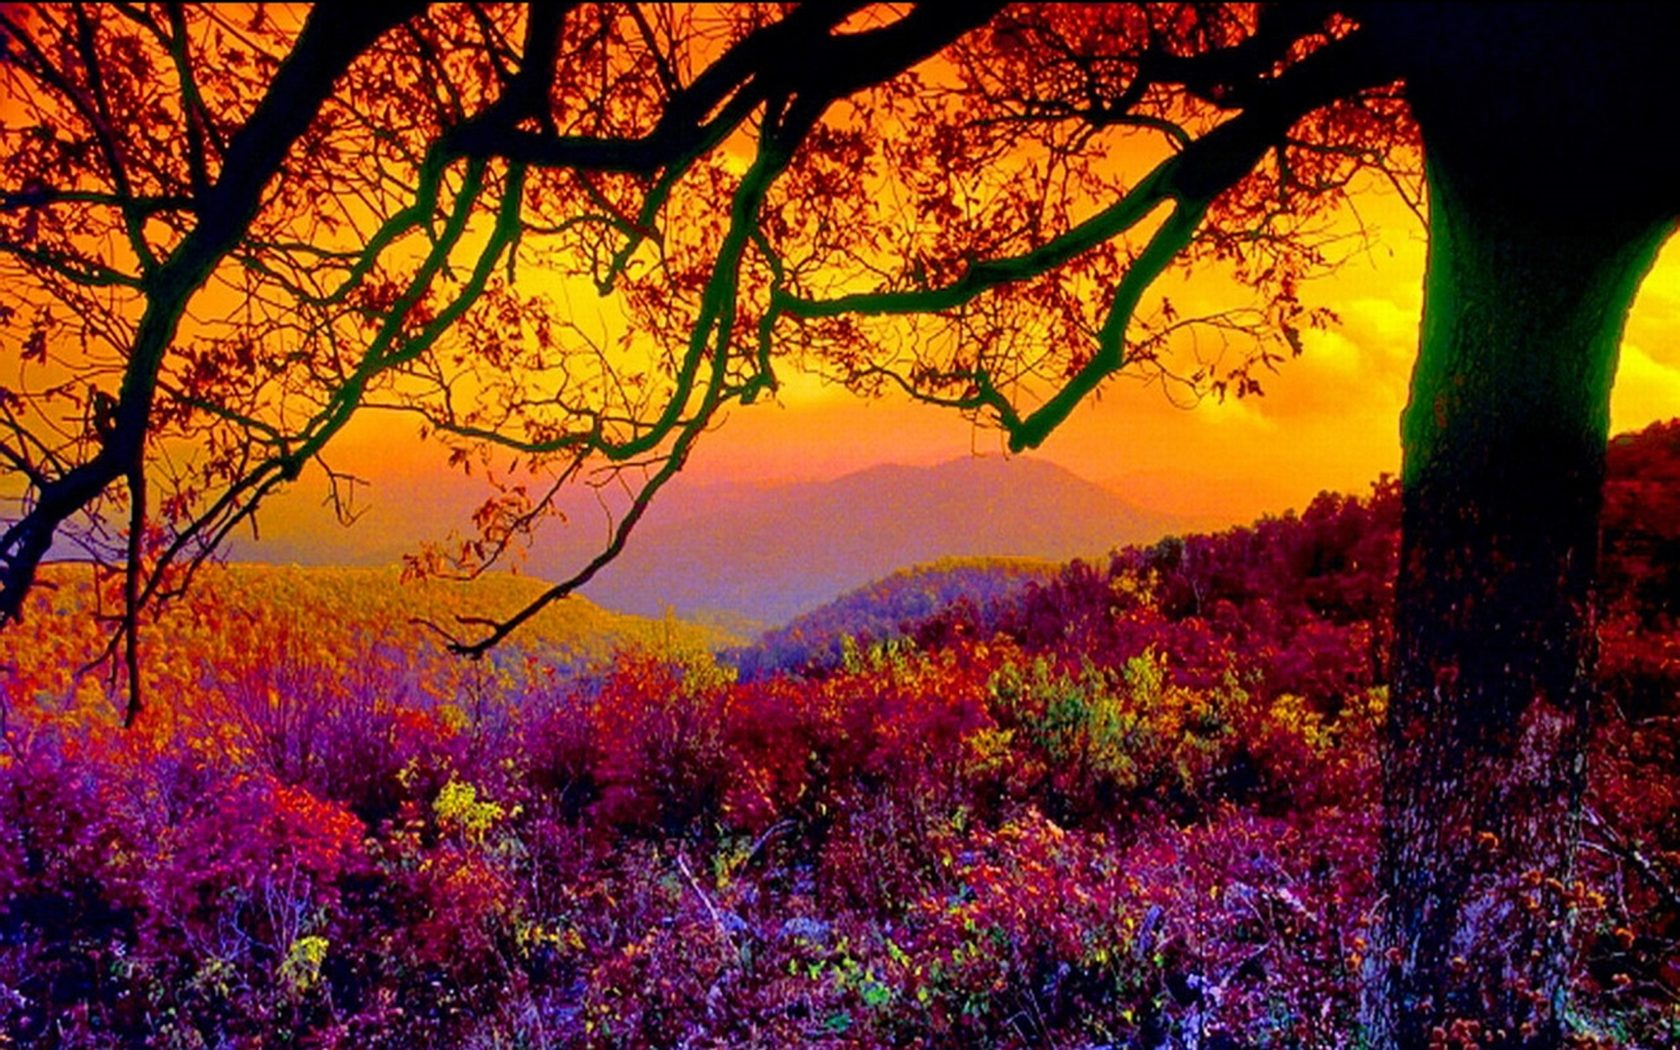 Scenic Hd Wallpapers Backgrounds Page